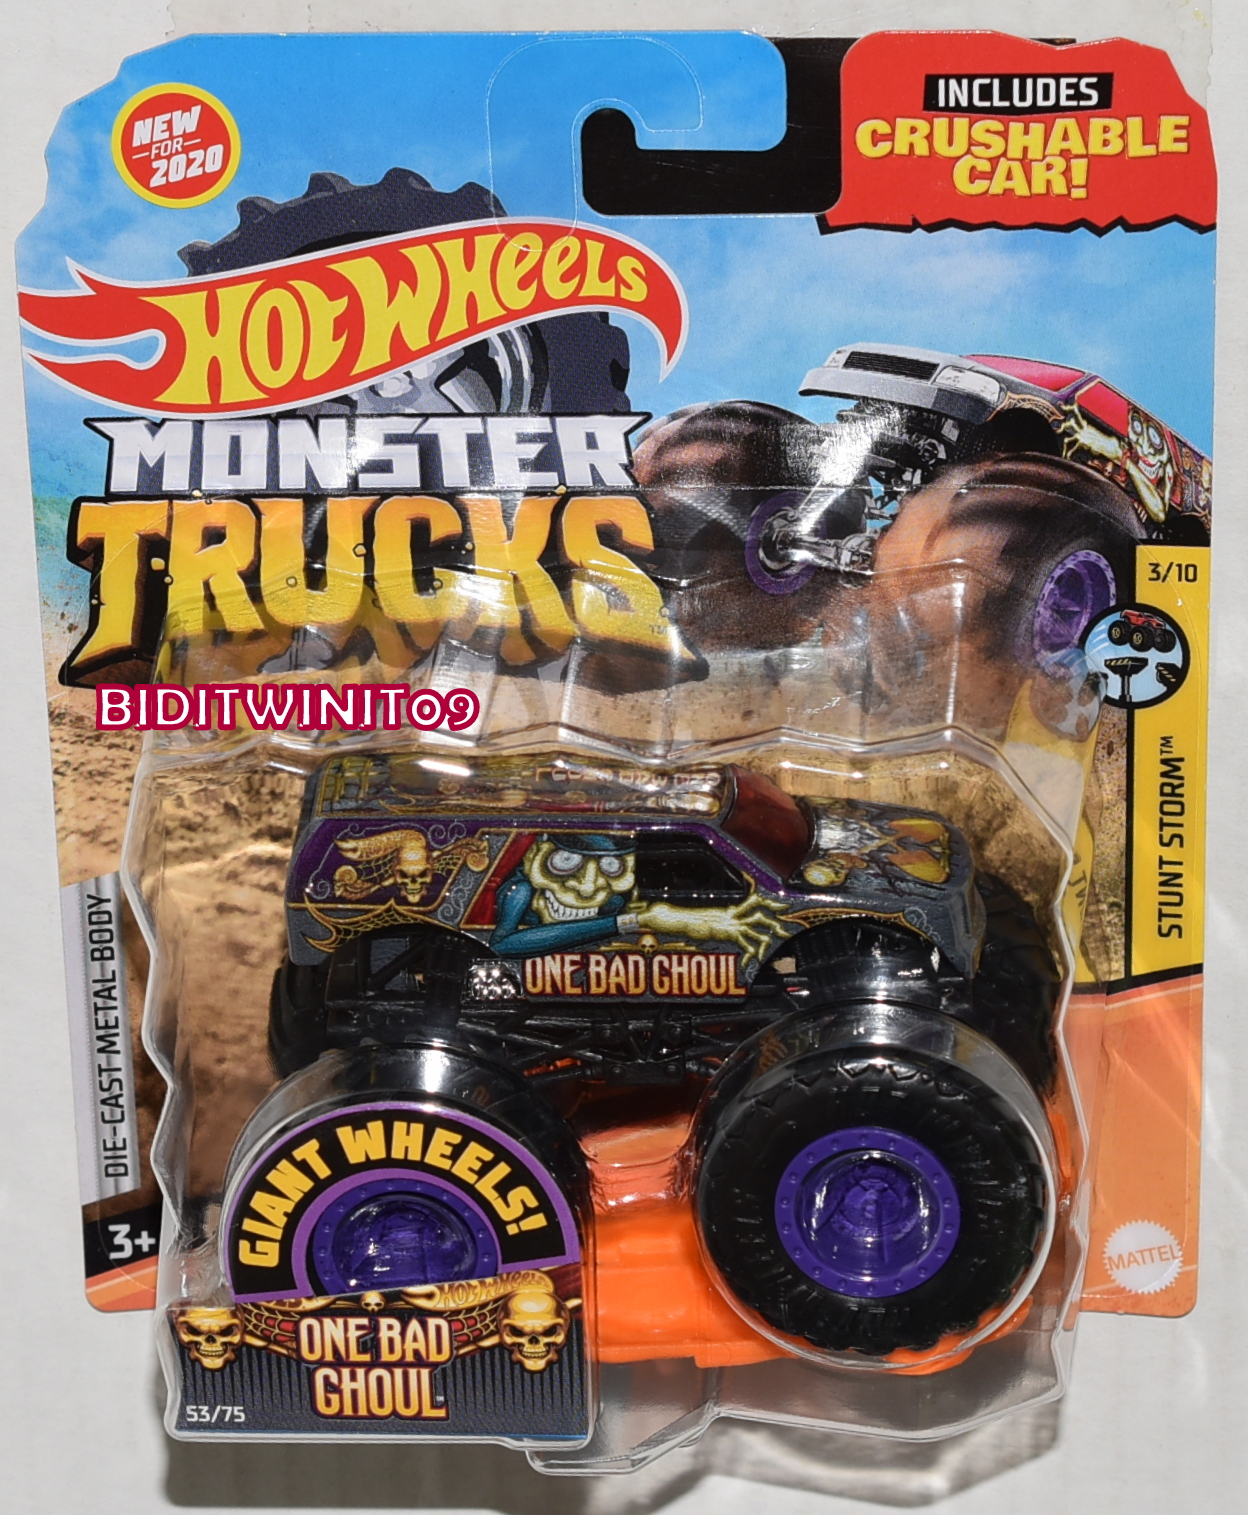 Hot Wheels 2020 Giant Wheels Monster Trucks Case G One Bad Ghoul 0024503 5 53 Biditwinit09 Com Classic Colections